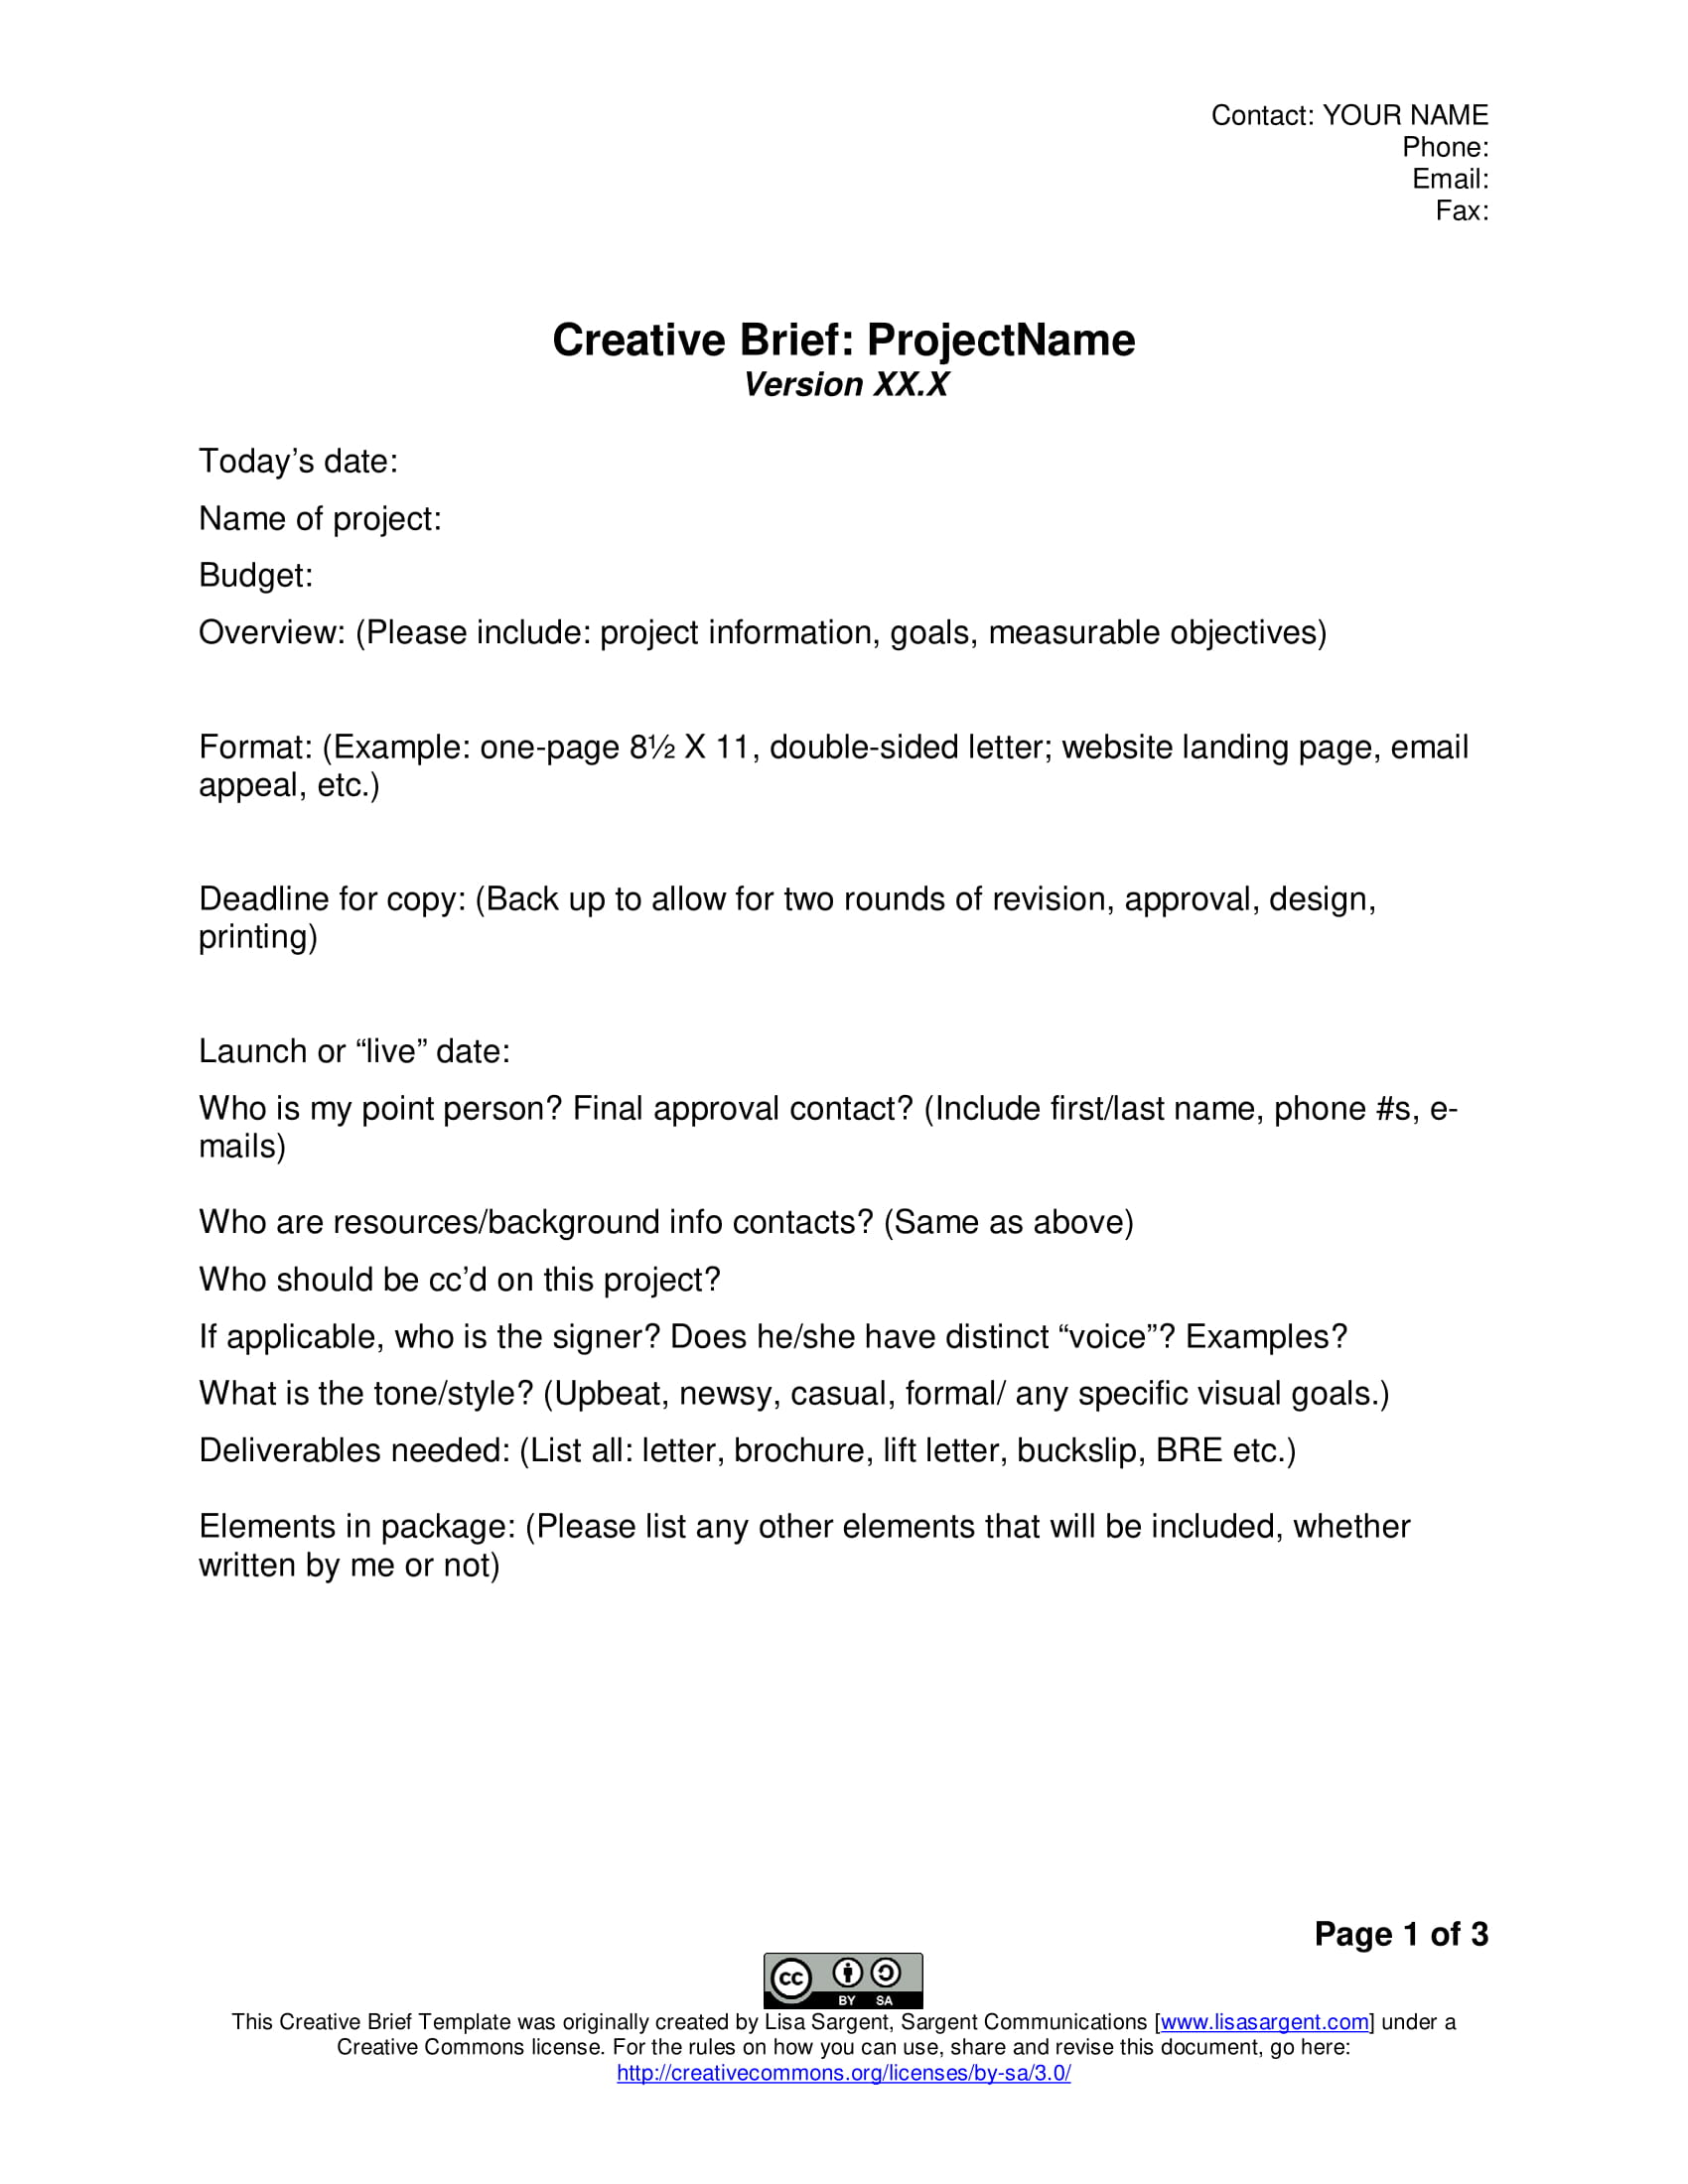 general creative brief template example